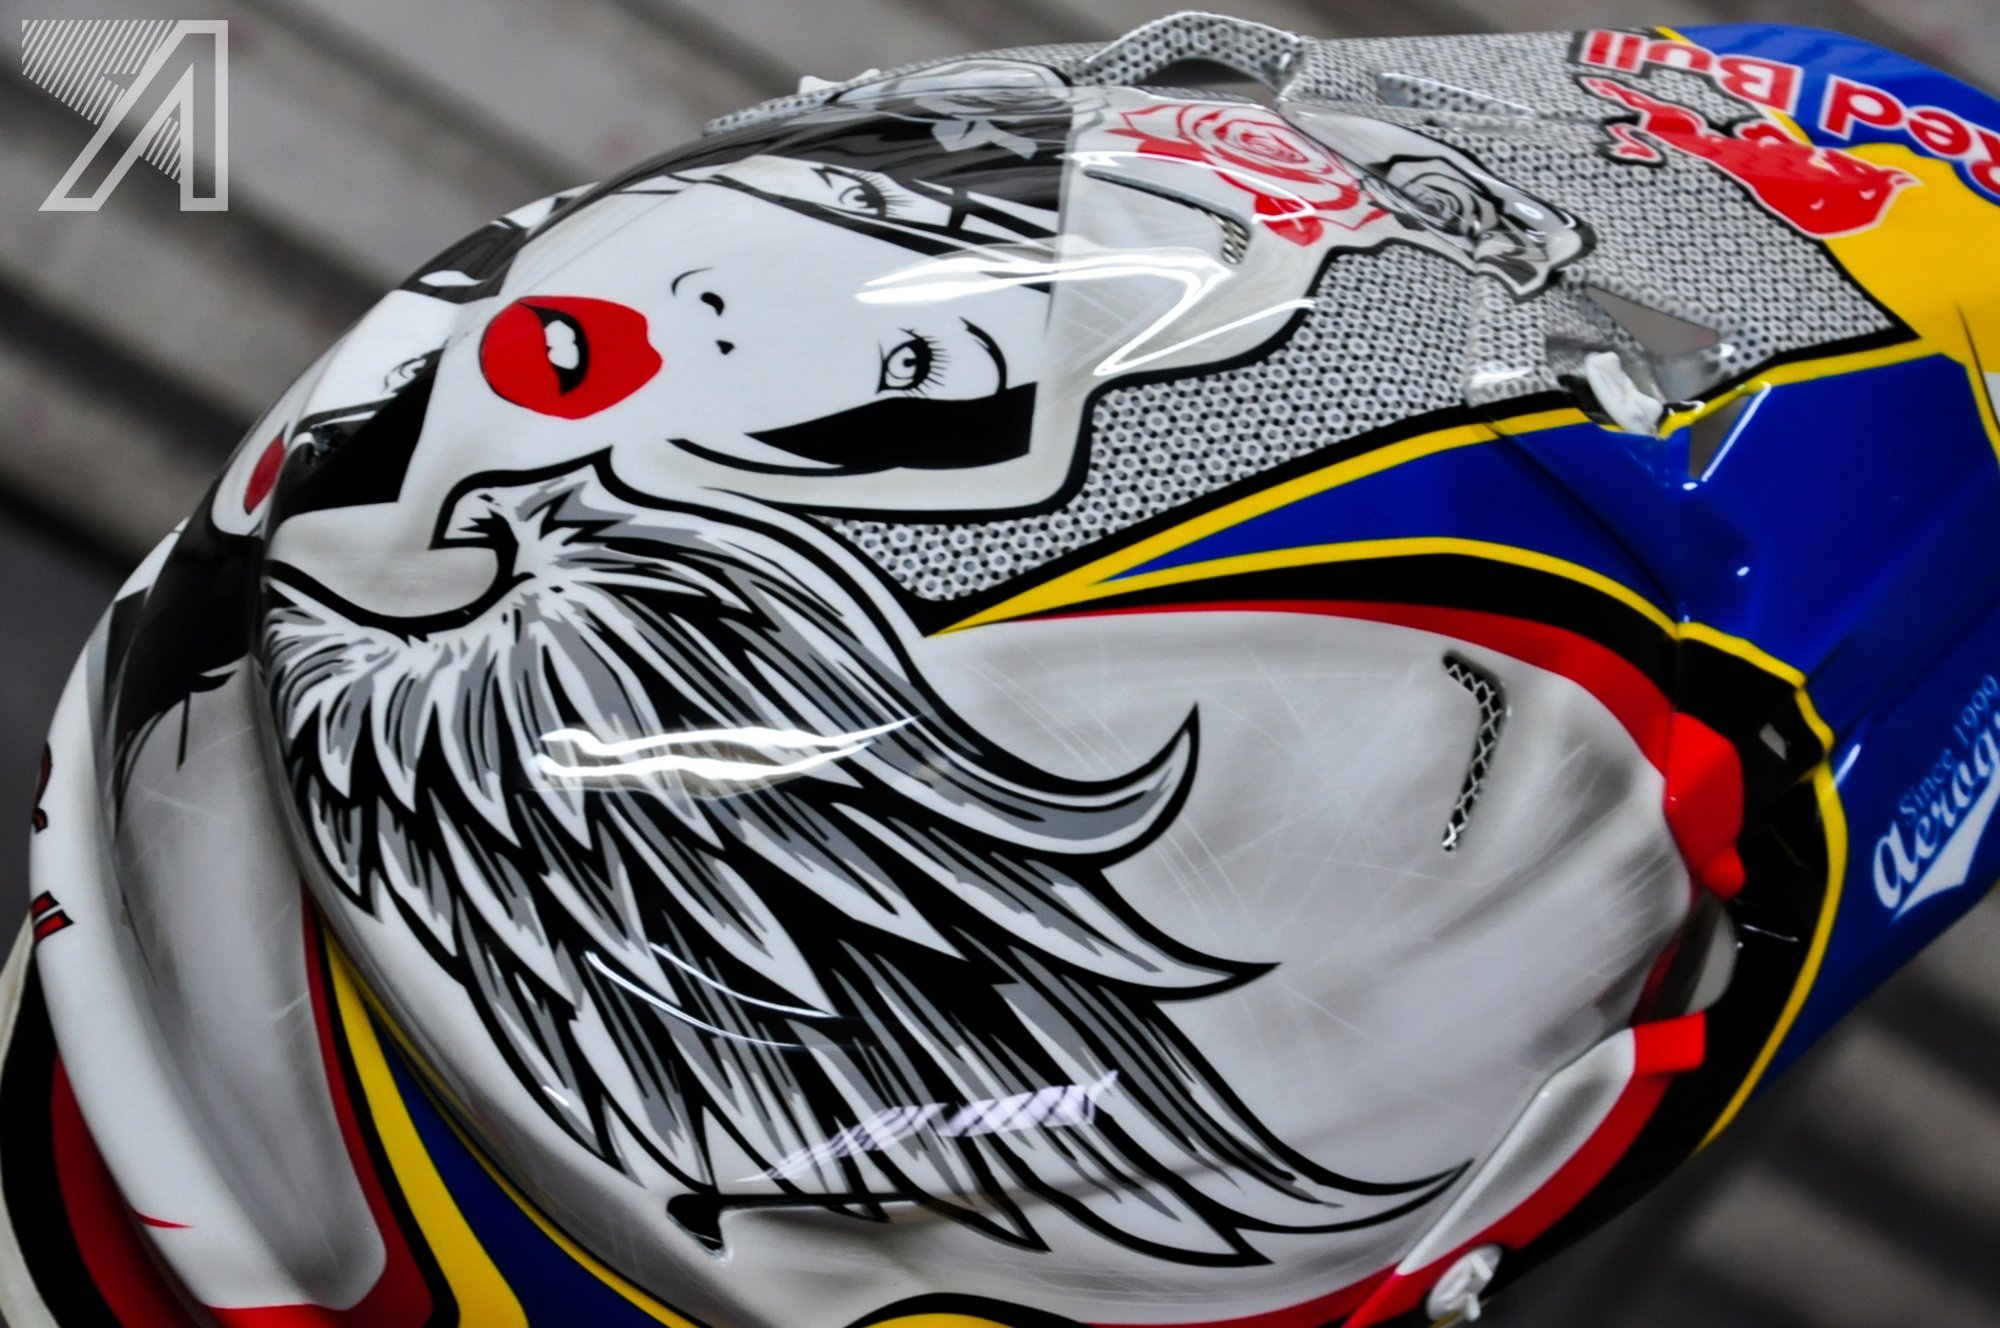 2016-10::1476139179-red-bull-enduro-4.jpg